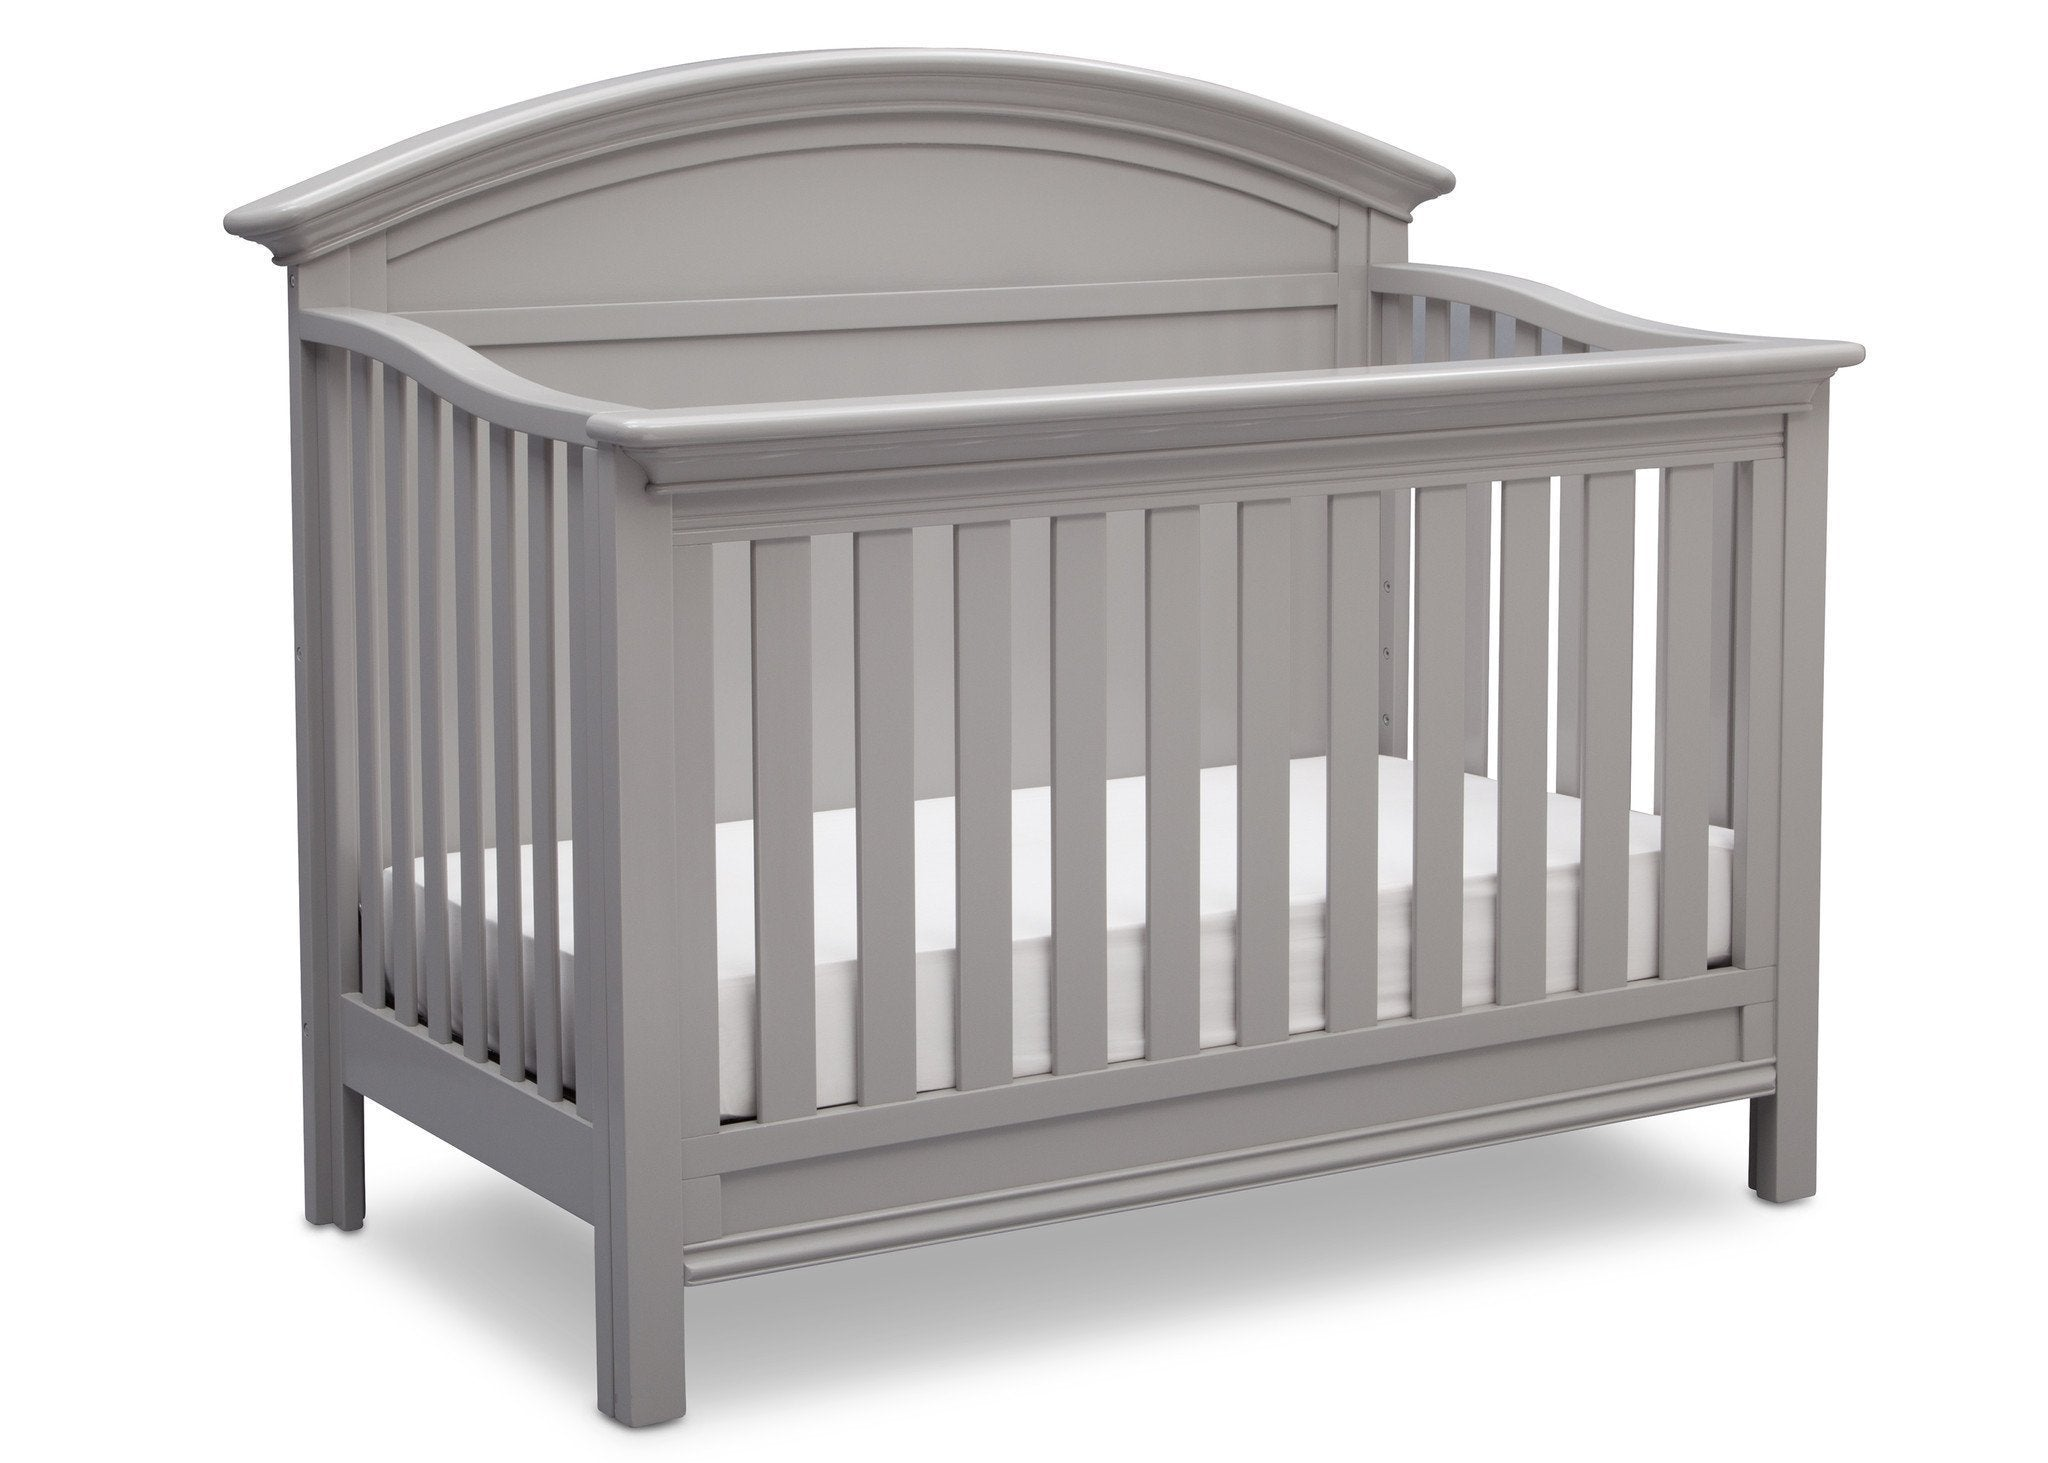 Serta Grey (026) Adelaide 4-in-1 Crib, Side View with Crib Conversion a4a